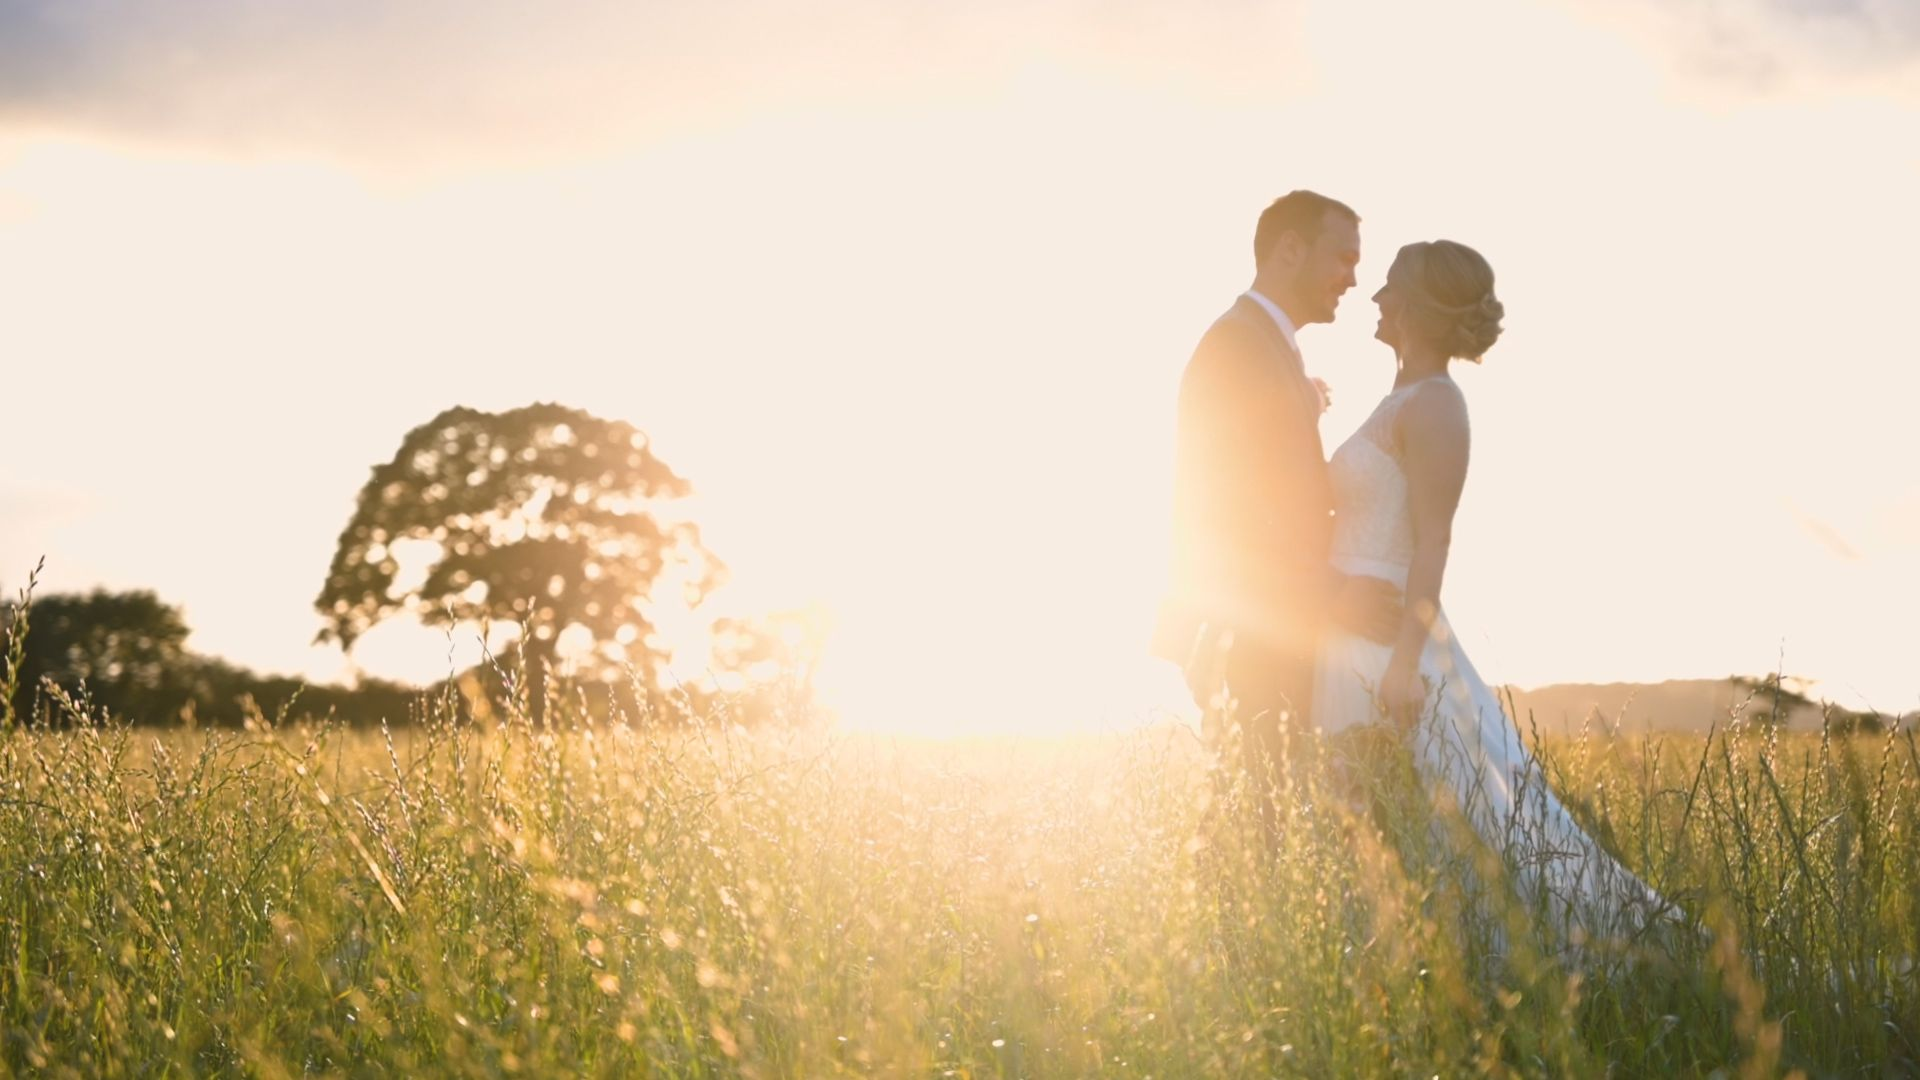 Bride and groom in each others arms in a field at sunset